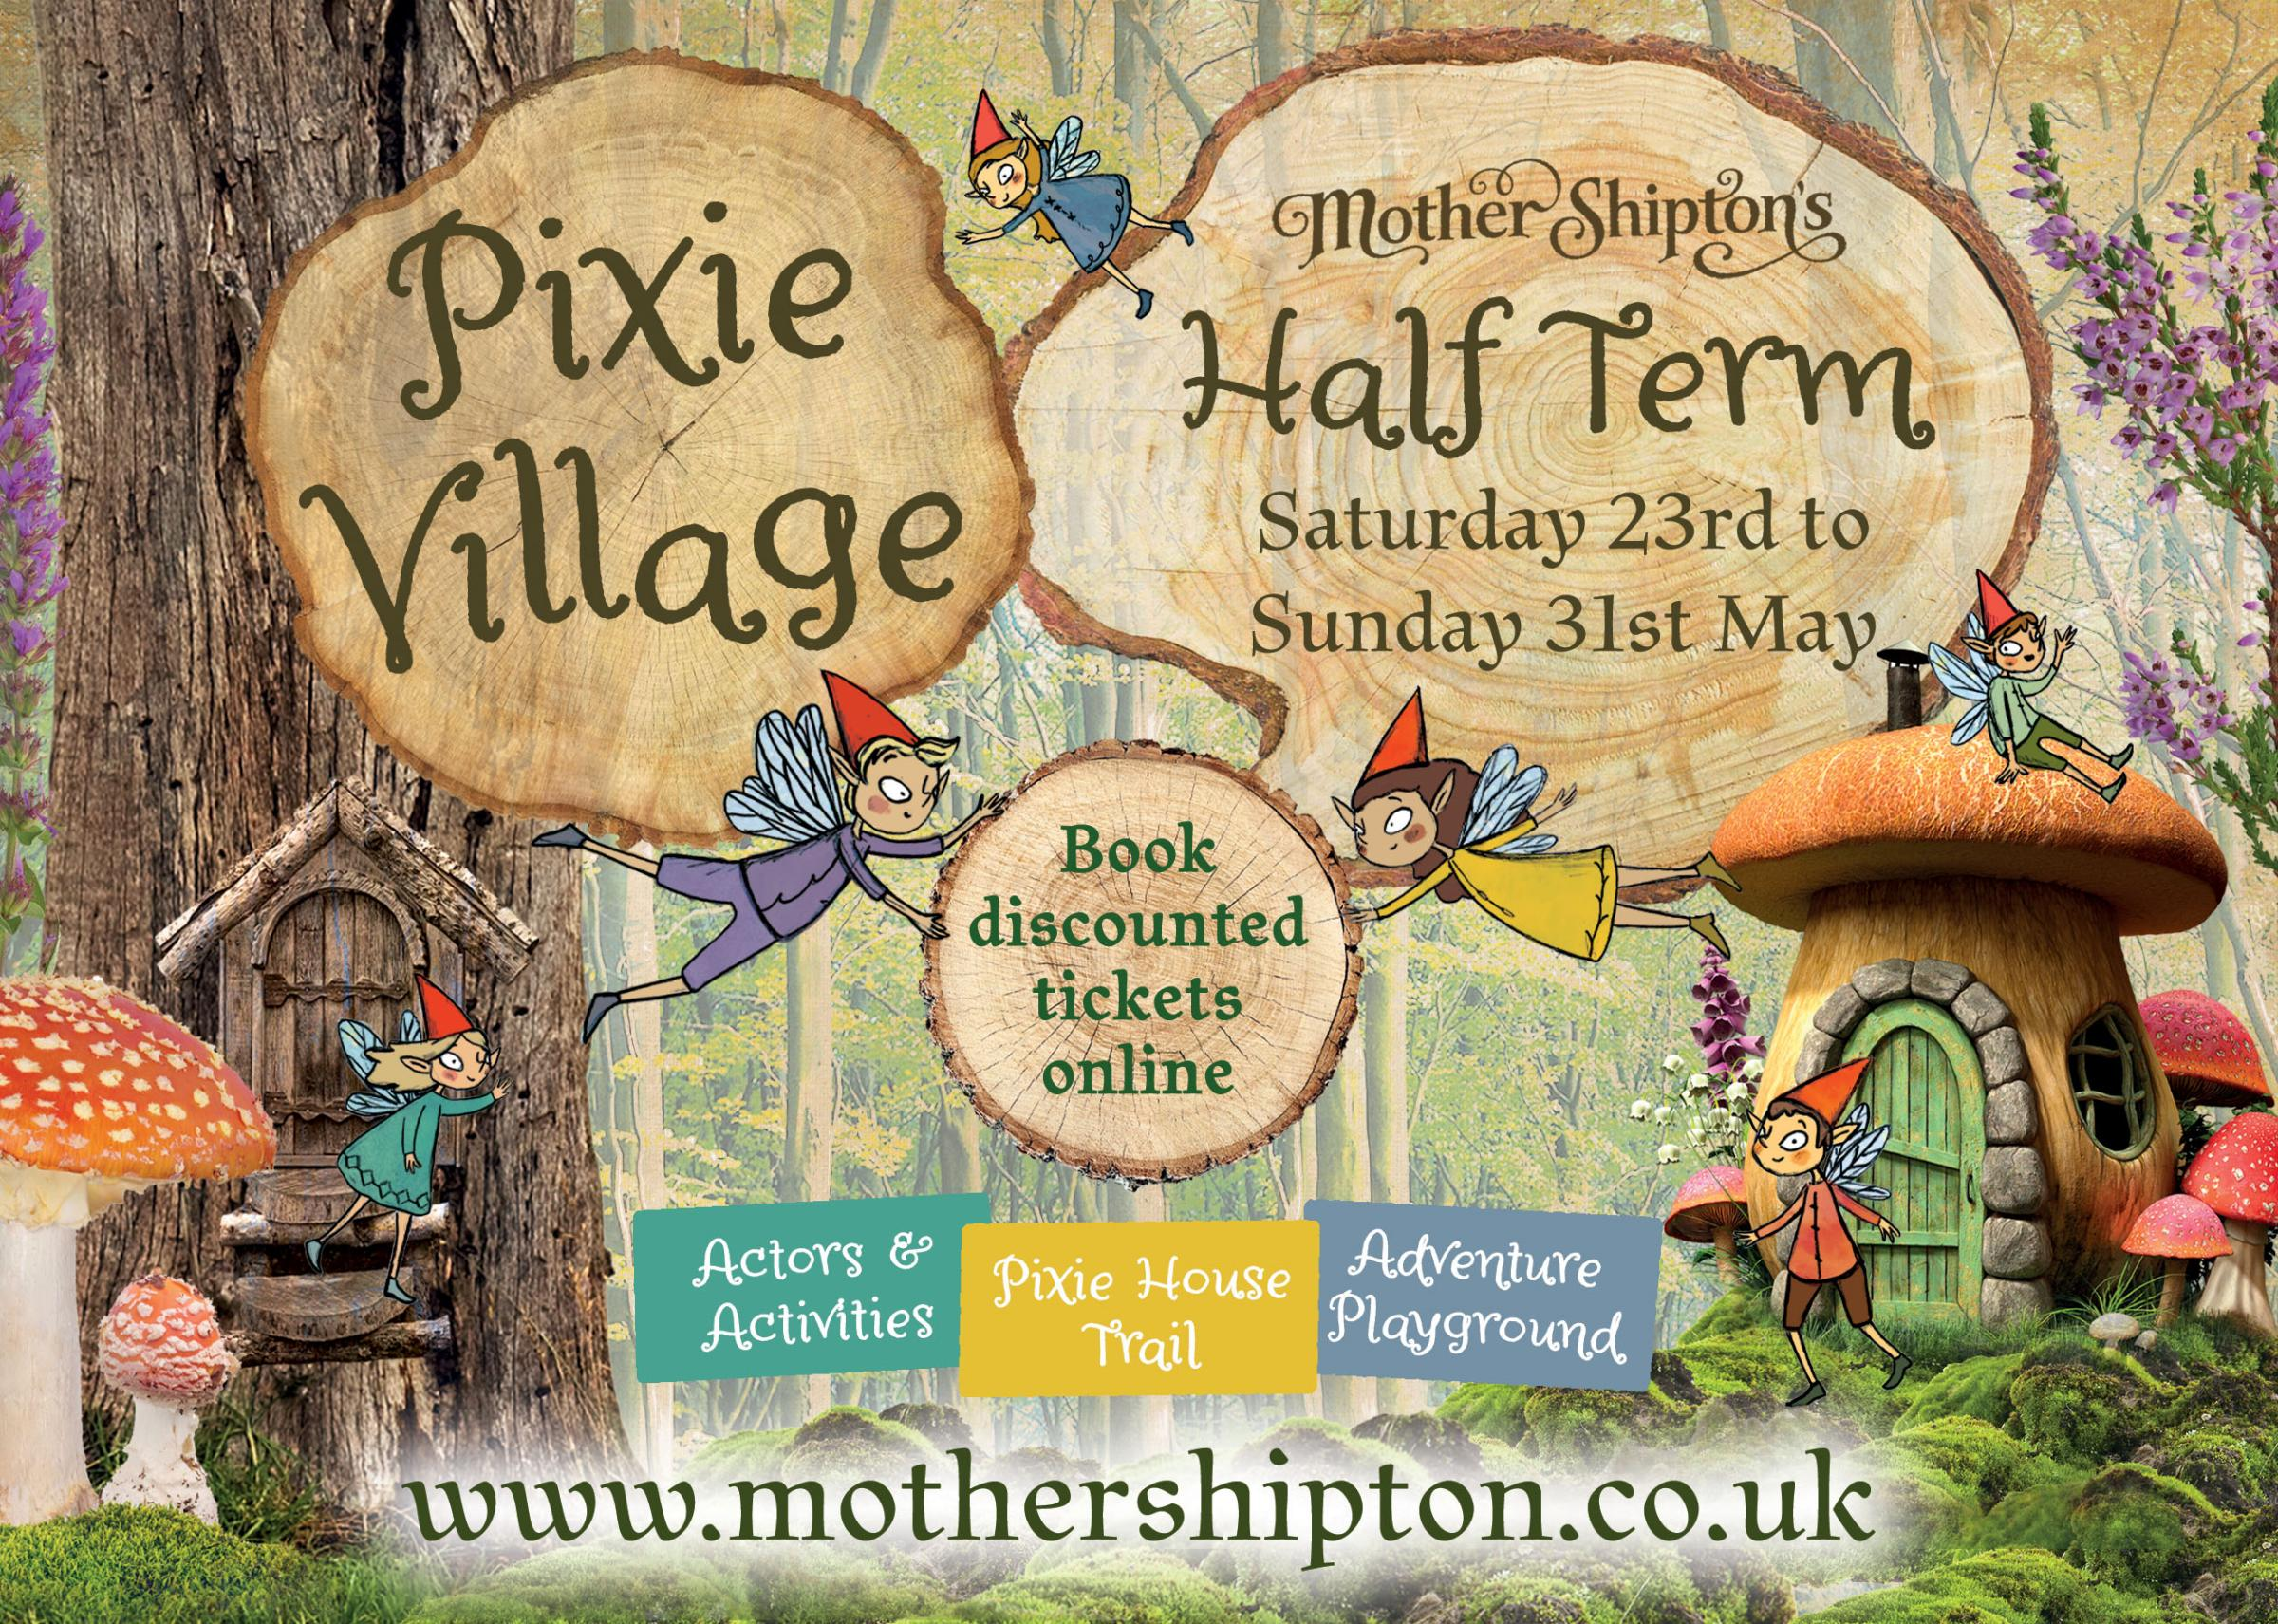 Pixie Village May Half Term